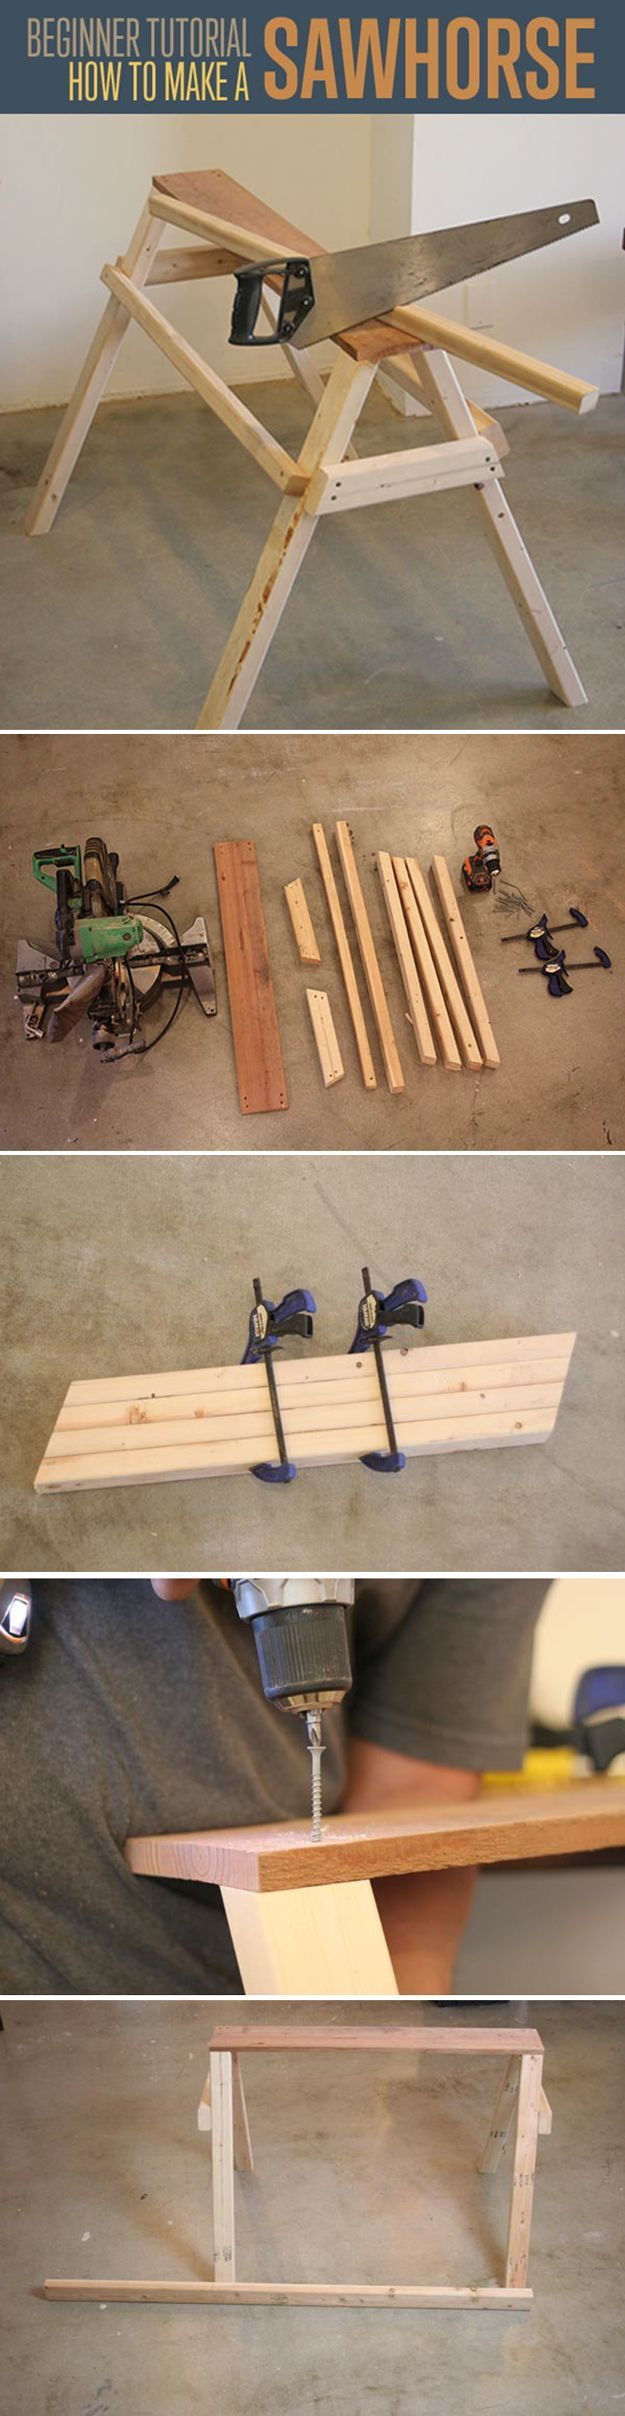 21 best images about saw horses on pinterest the family for Woodworking for beginners